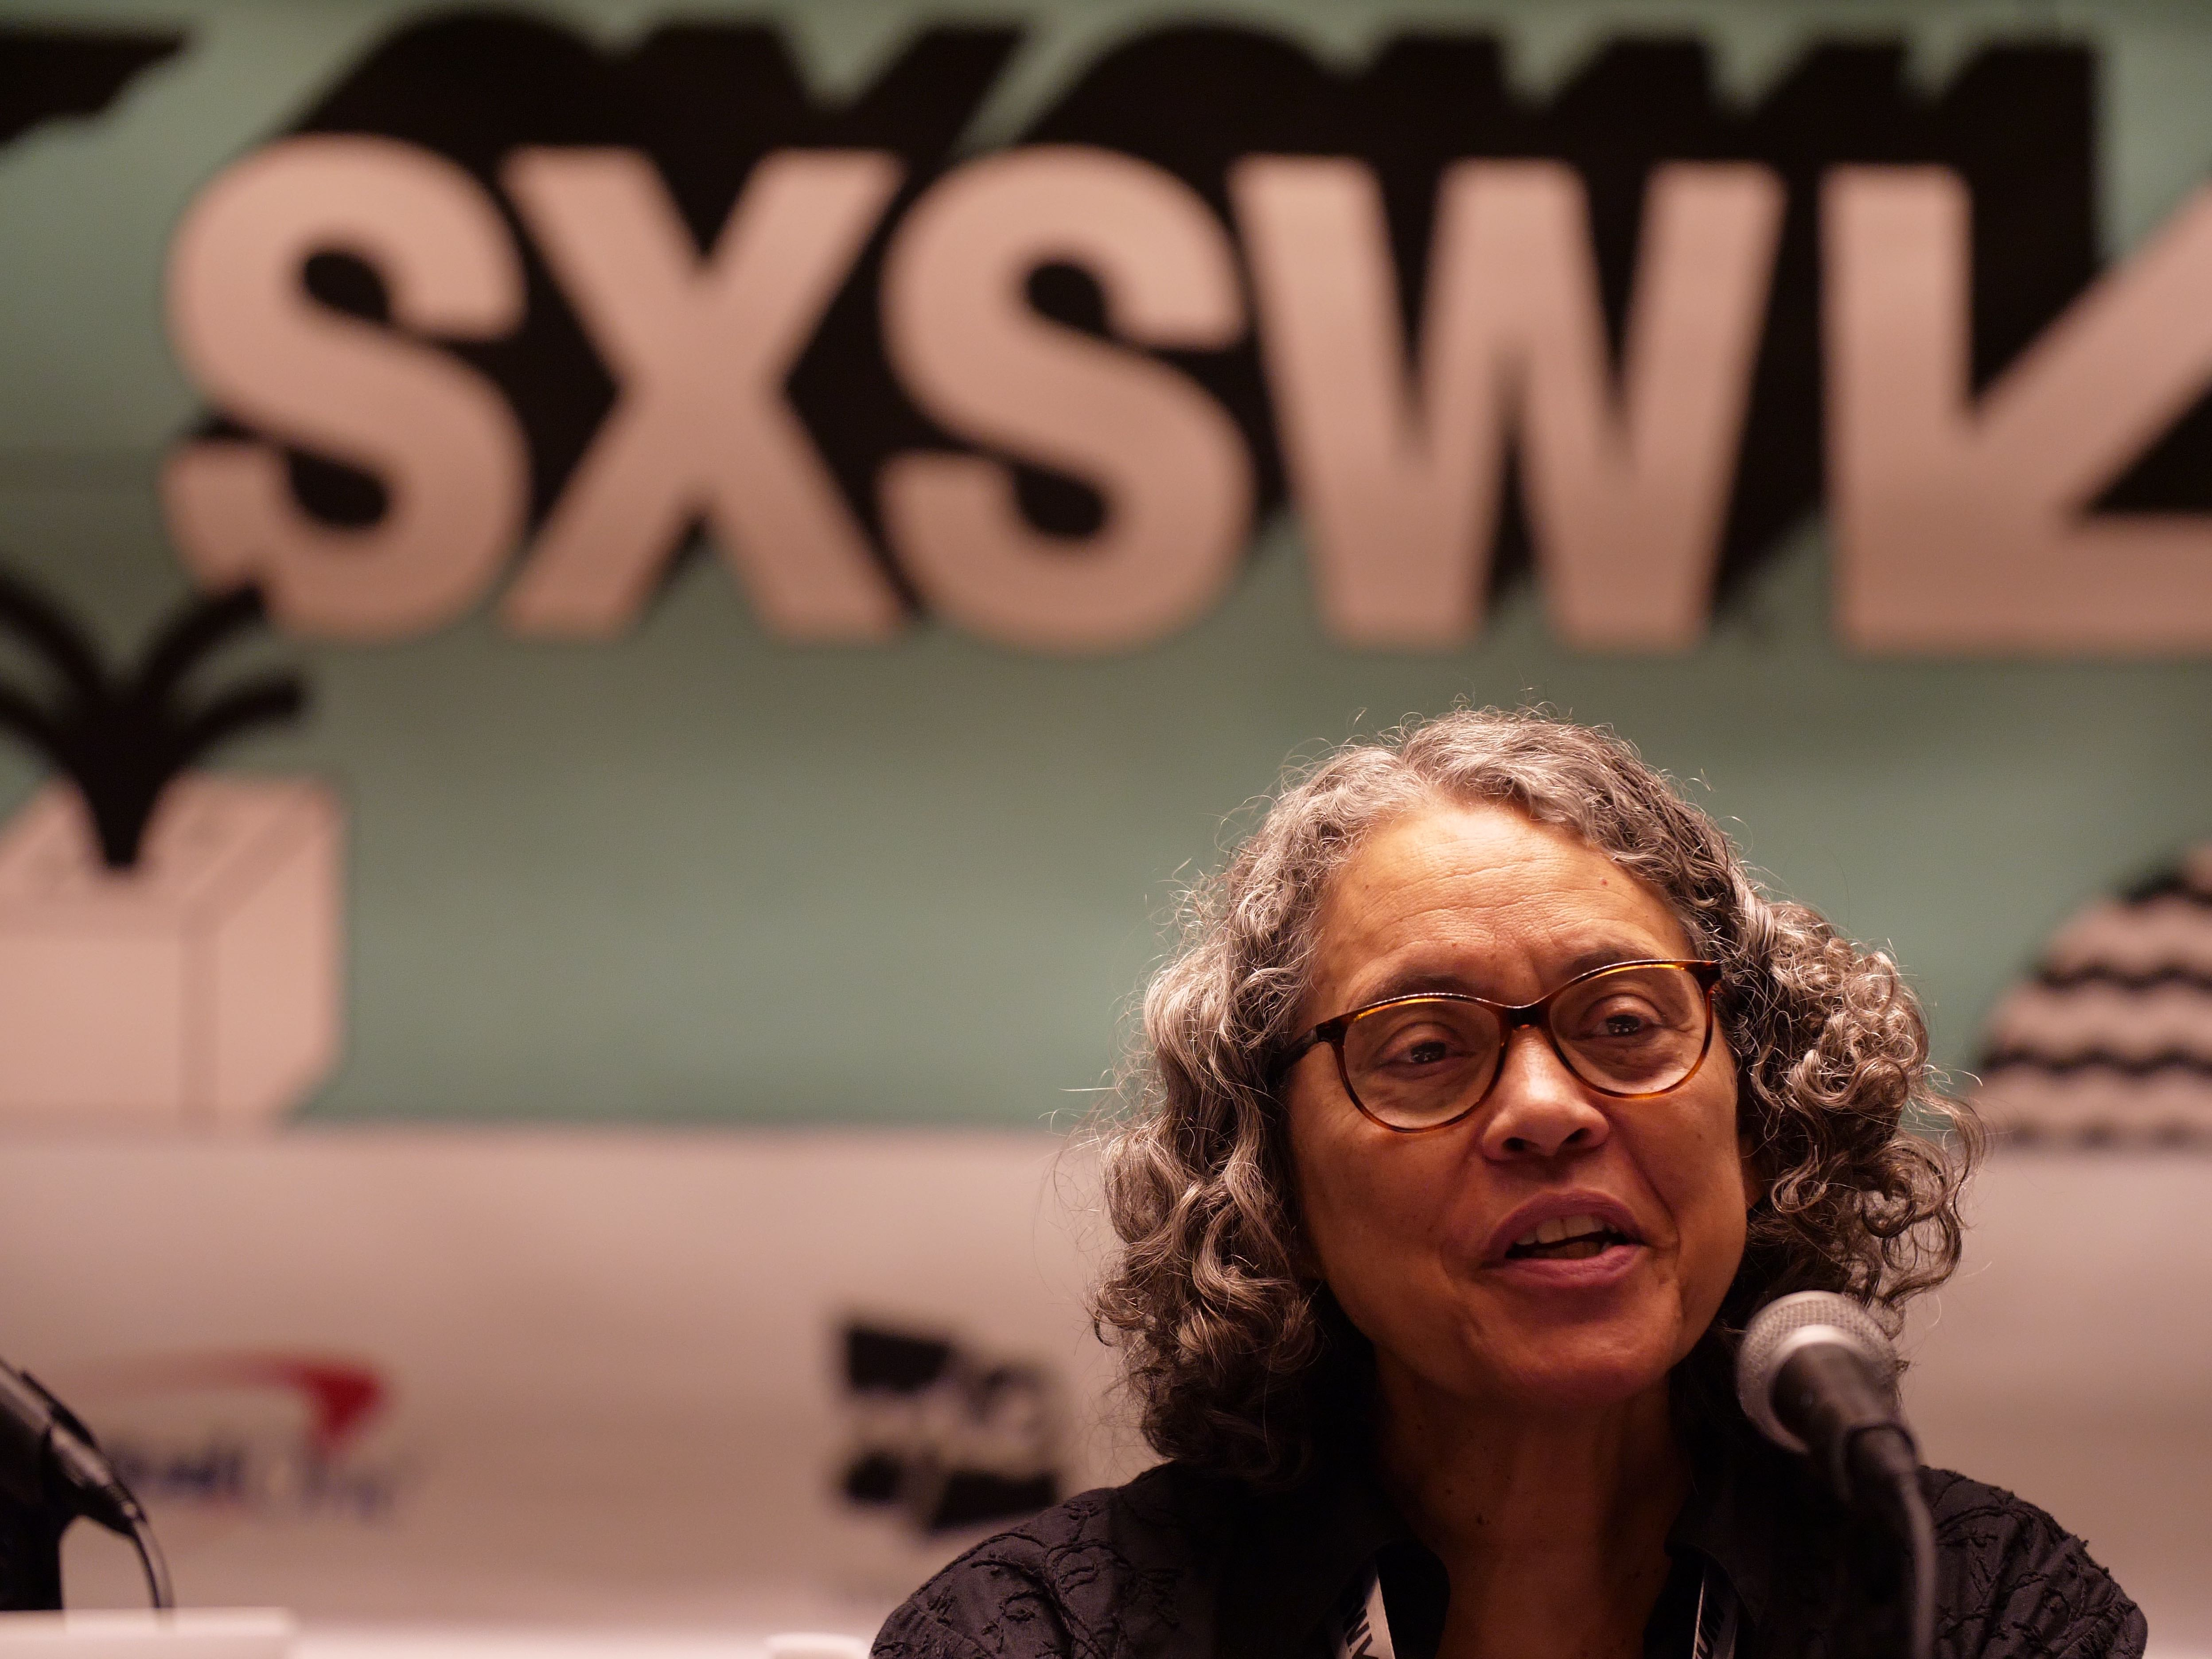 Mindy Fullilove speaking at #SXSW about 400 Years of Inequality